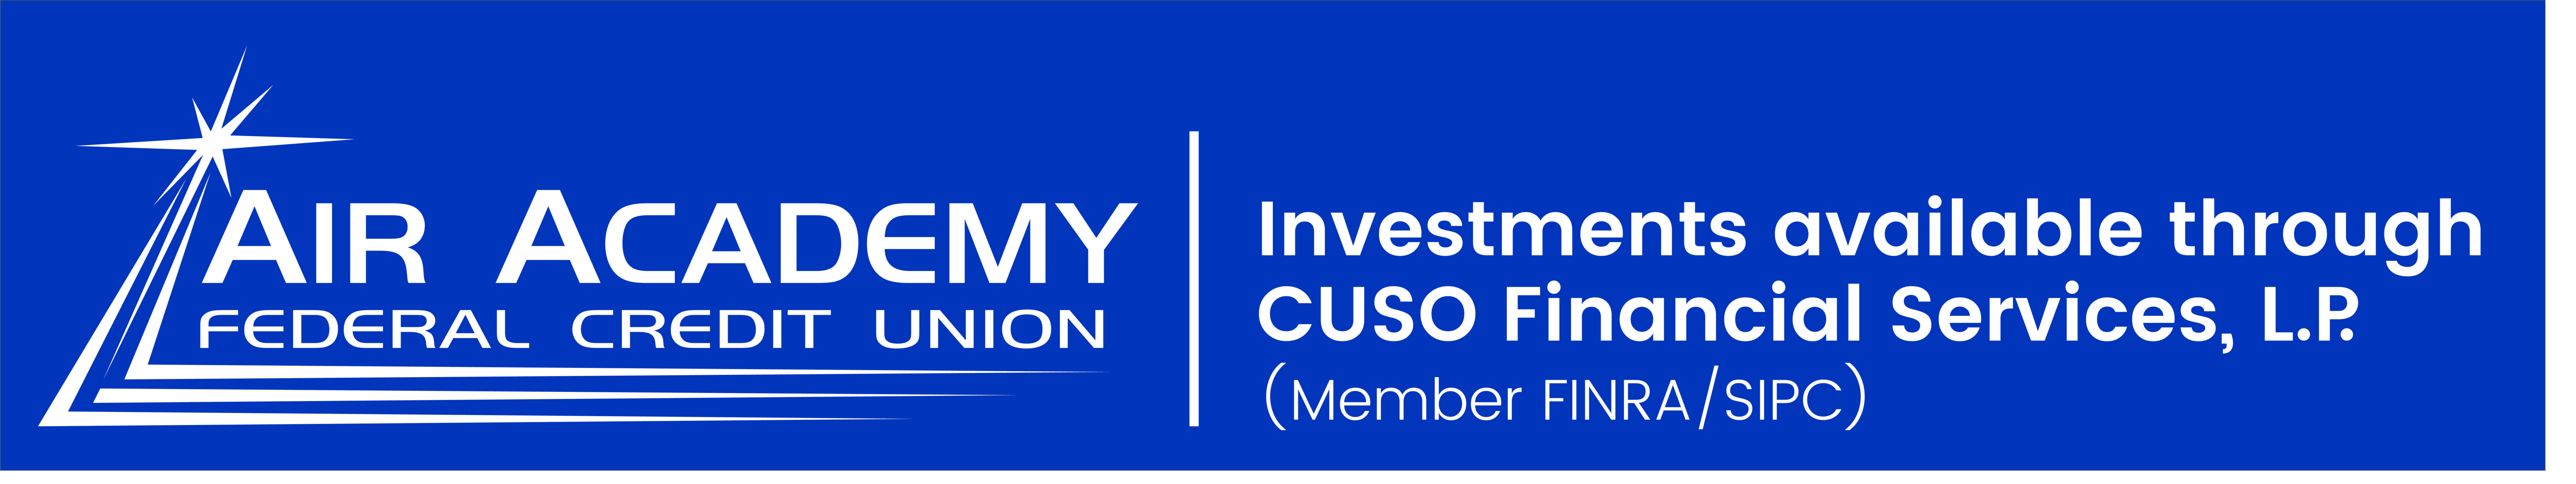 Air Academy Federal Credit Union Investment available through CUSO Financial Services LP